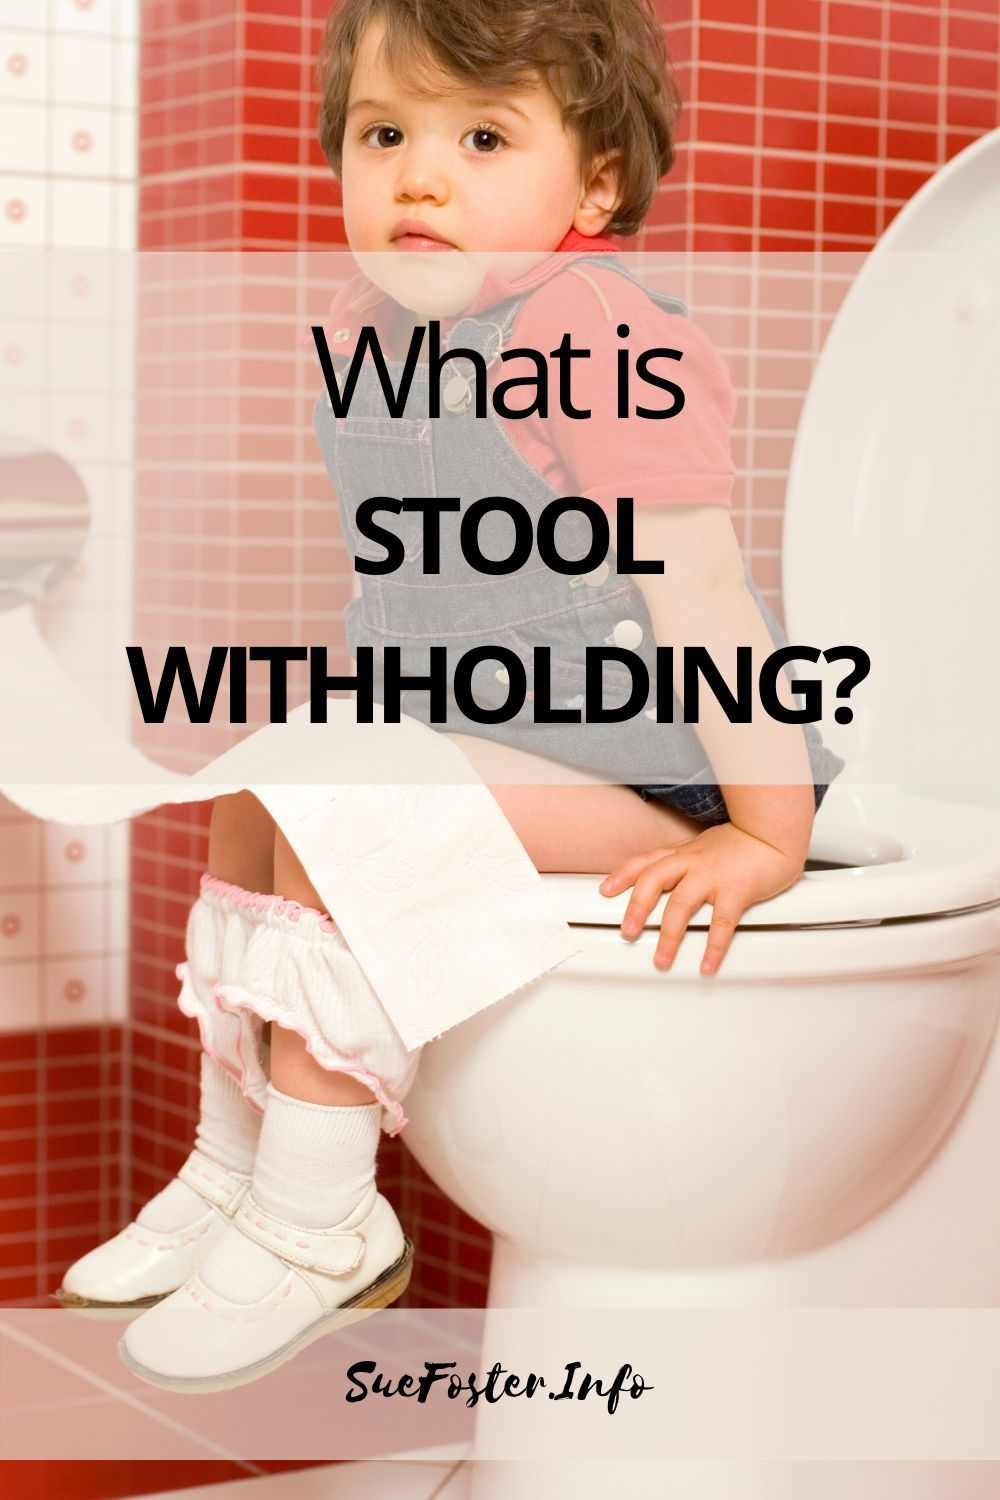 Stool withholding is when a child or a baby hold their stools in for days or weeks at a time. It can stem for example from various things such as being frightened to go to the toilet in case it hurts, or not wanting to use dirty school toilets.